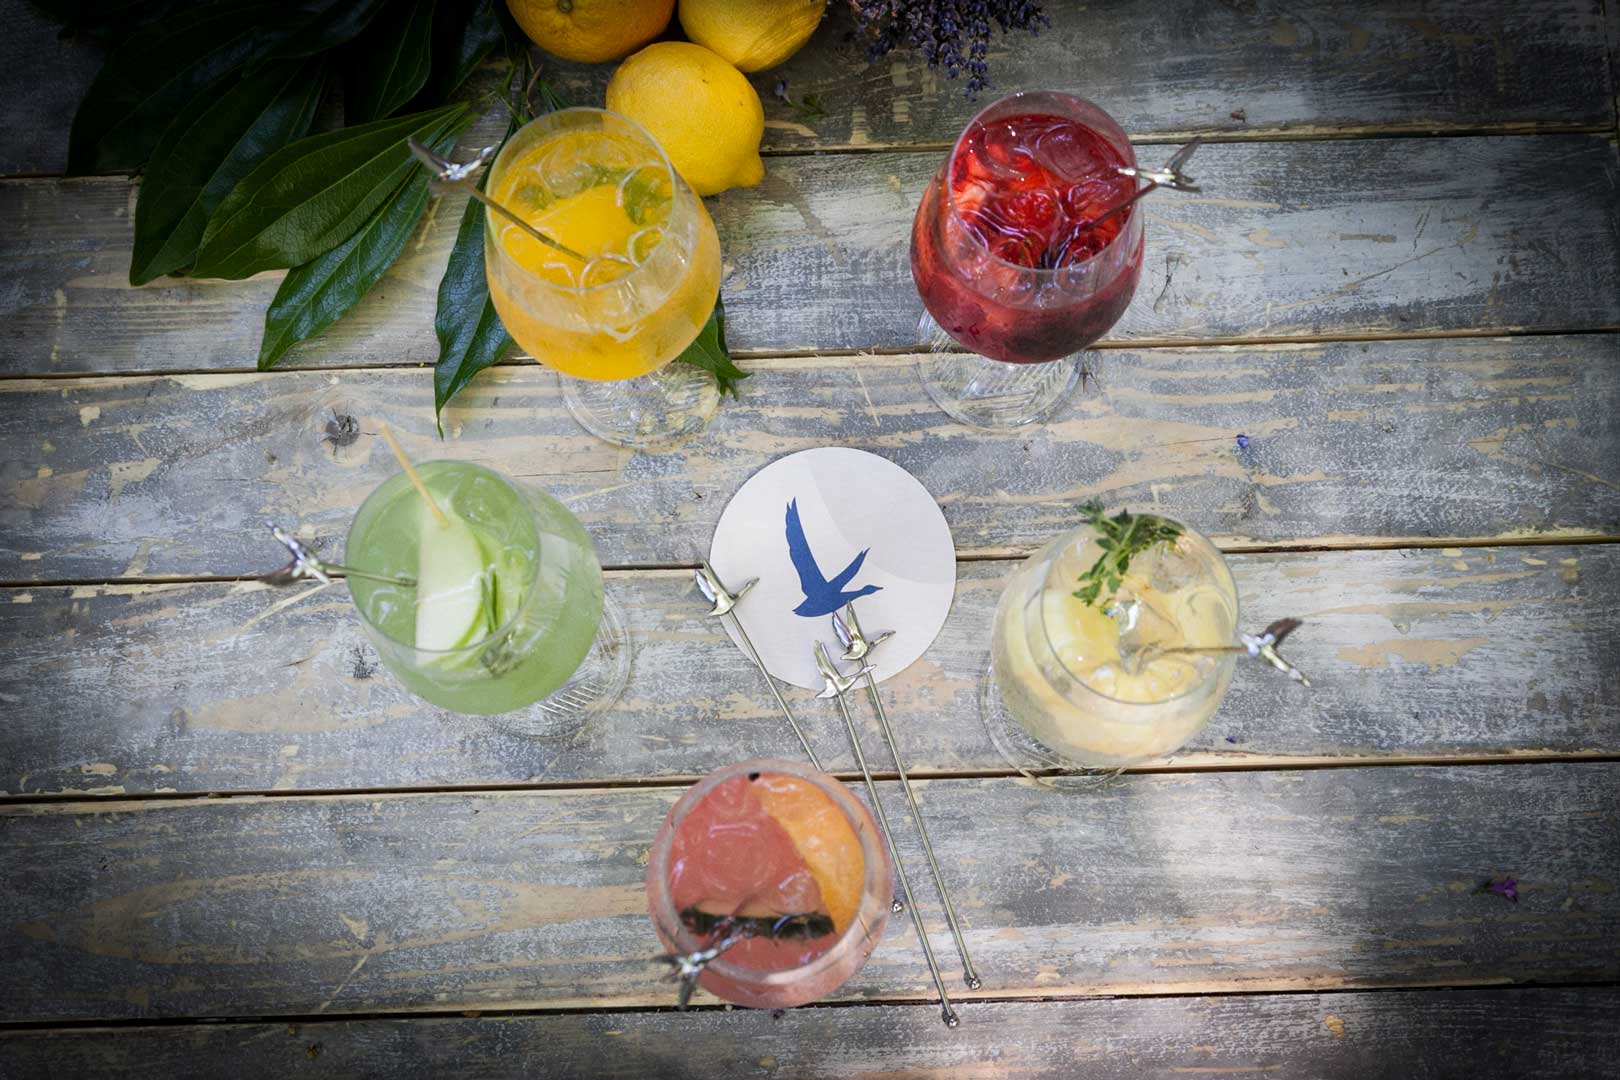 Grey Goose Atelier of Taste @ Sheraton Diana Majestic | Cocktails